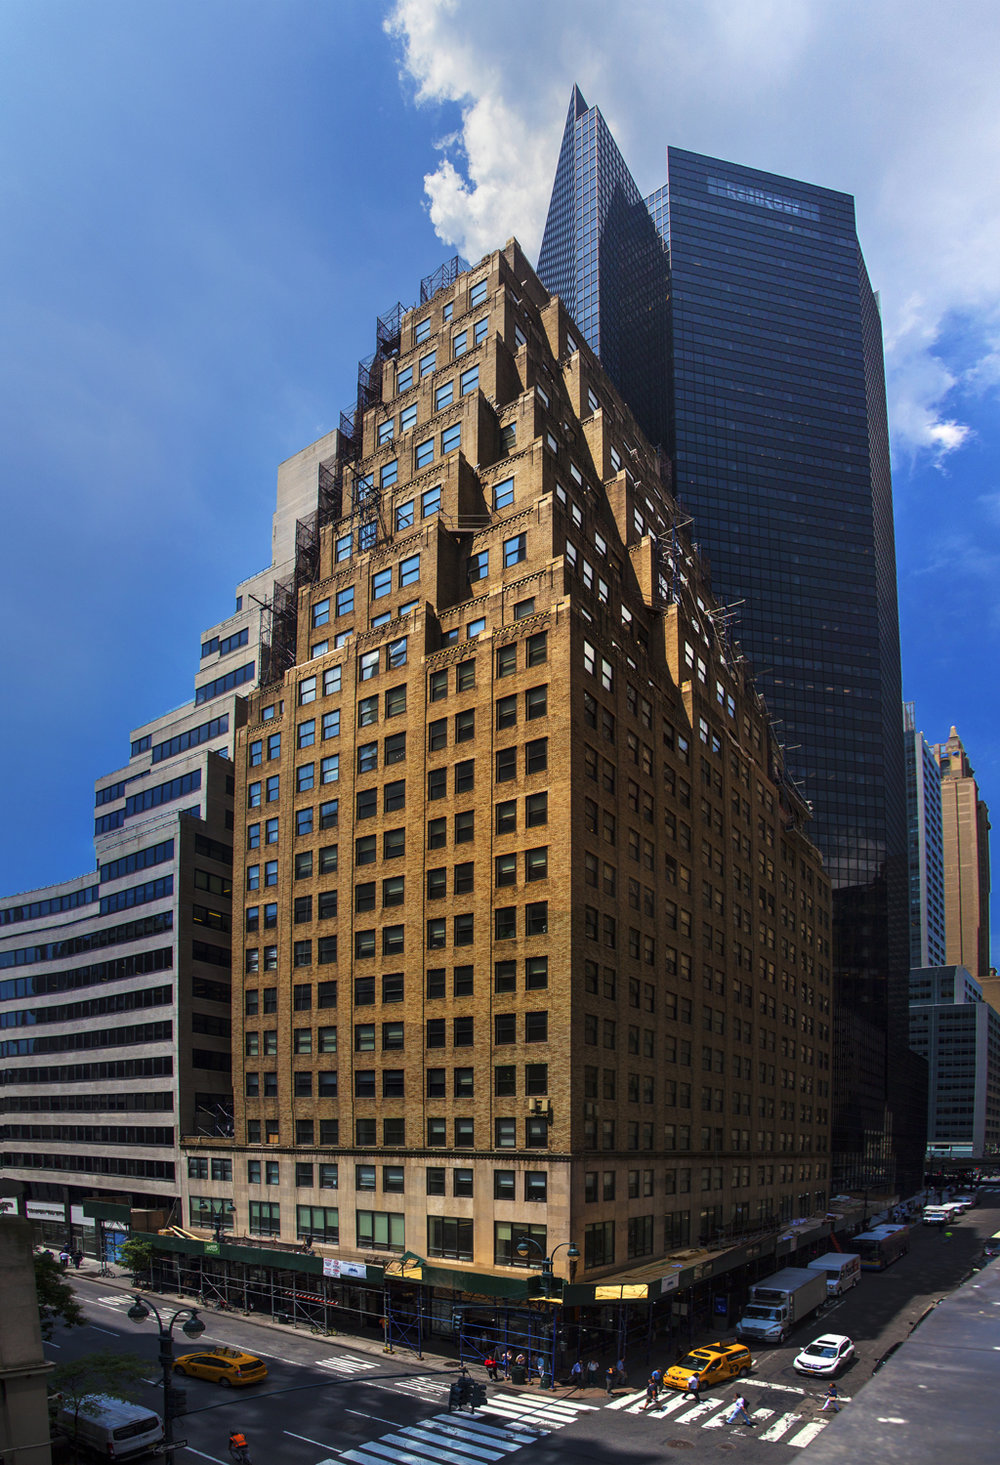 cushman-and-wakefield-commercial-real-estate-photographer-nyc-commercial-real-estate-photography-katrina-eugenia-photography-architectural-photography-nyc09.jpg